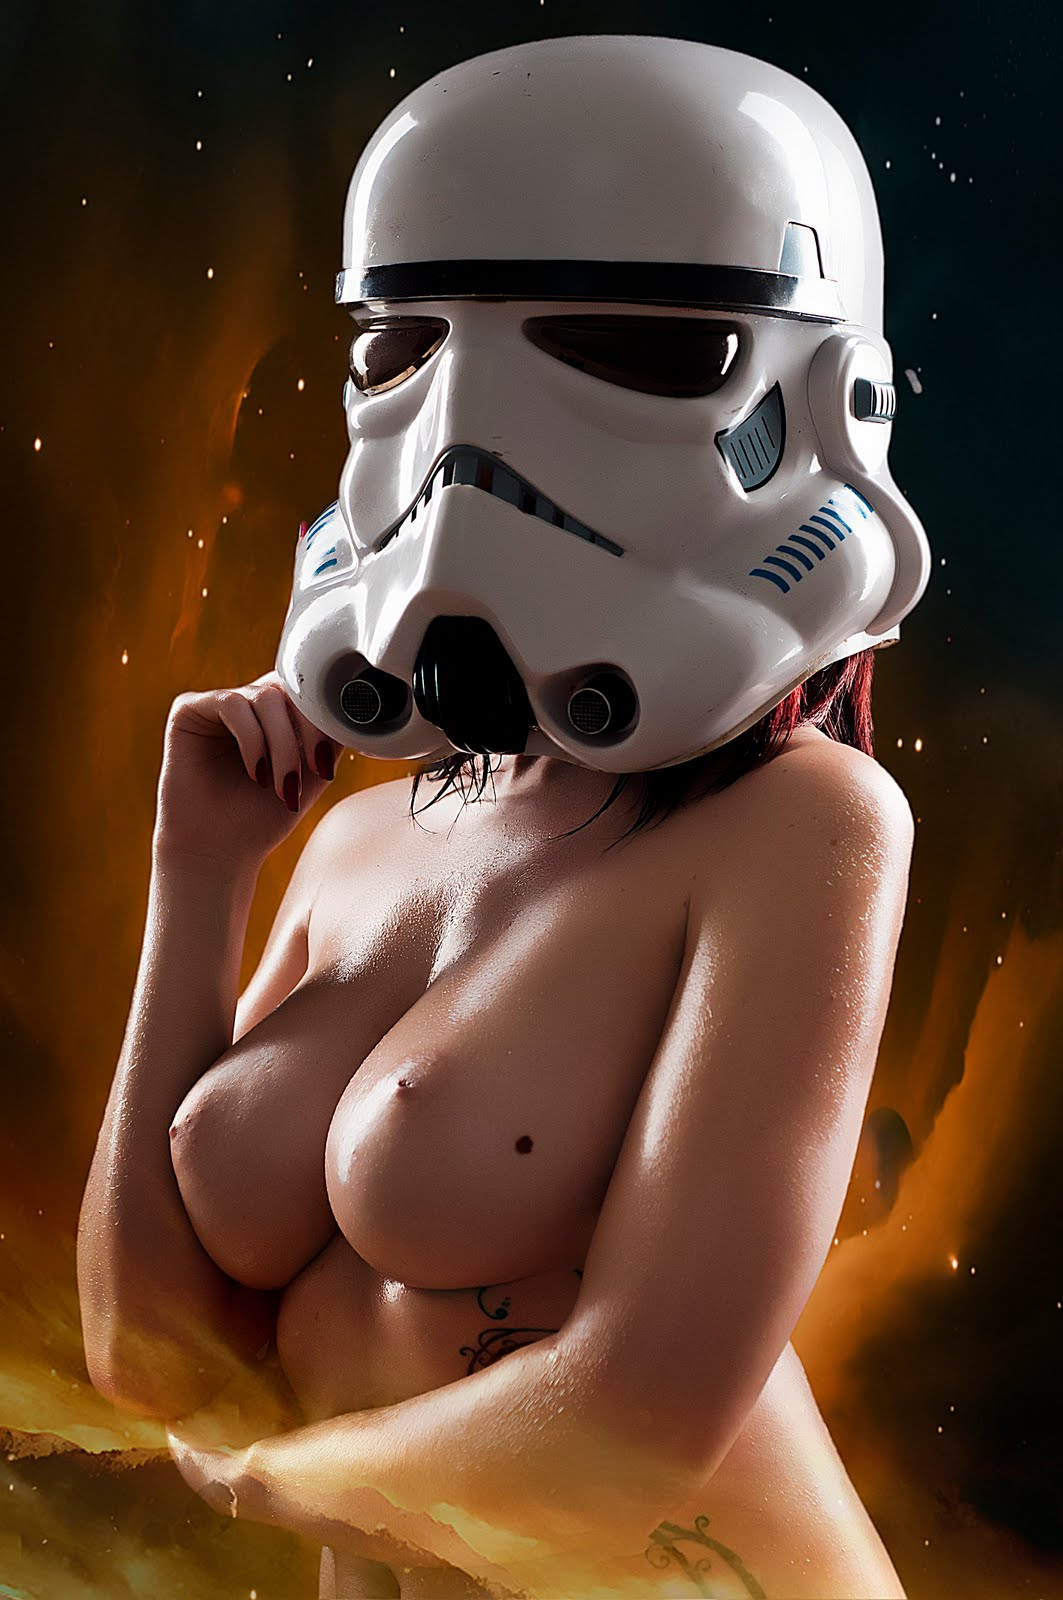 Star Wars cosplay sex